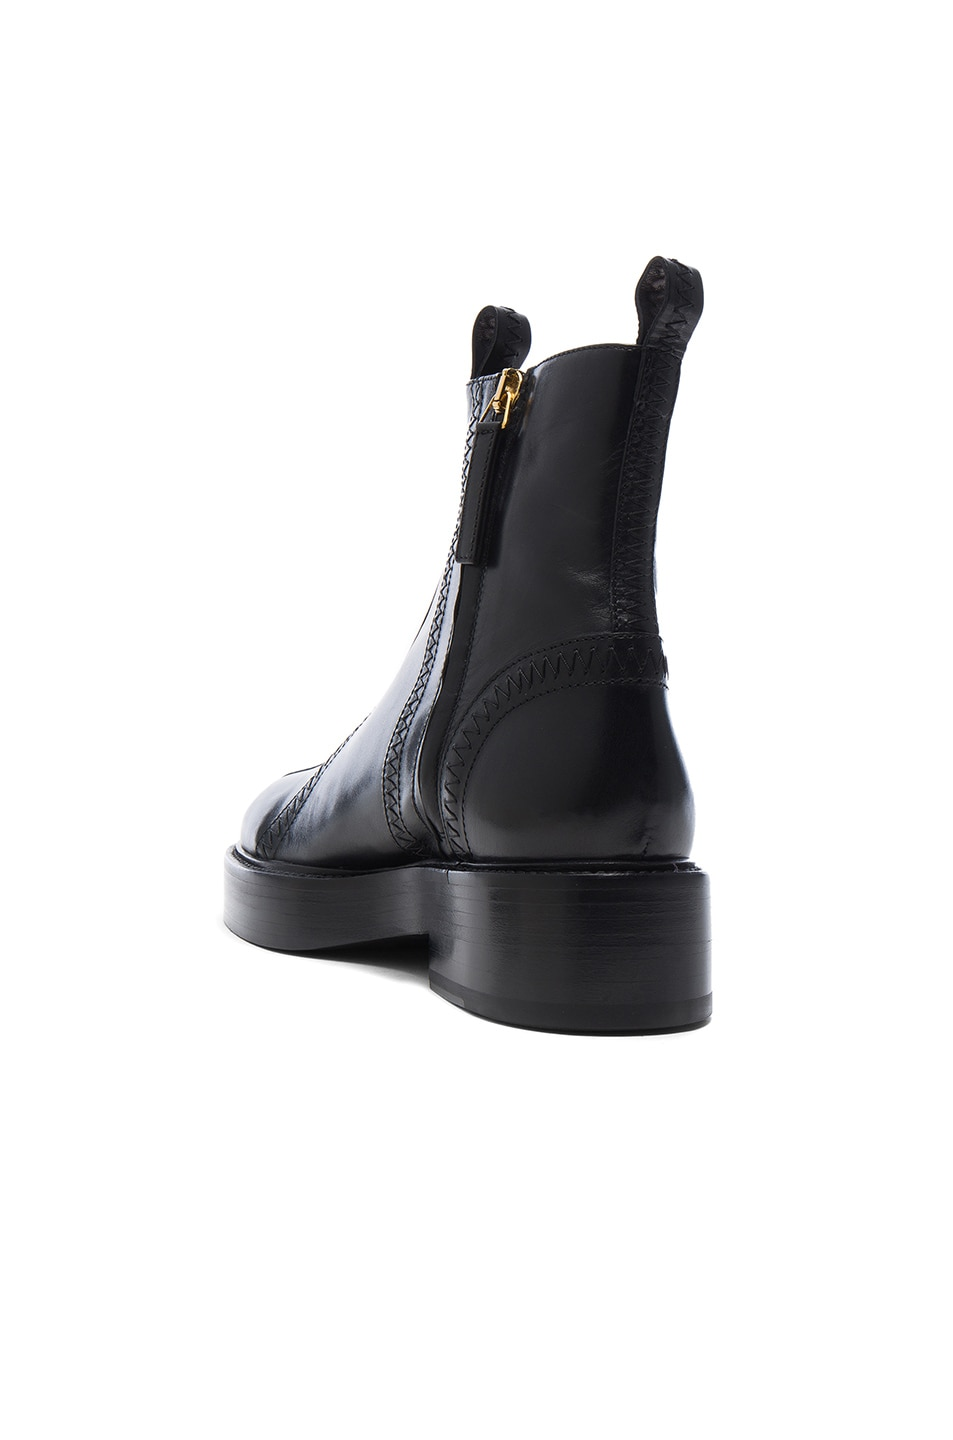 Image 3 of Ellery Leather Boots in Black & Gold